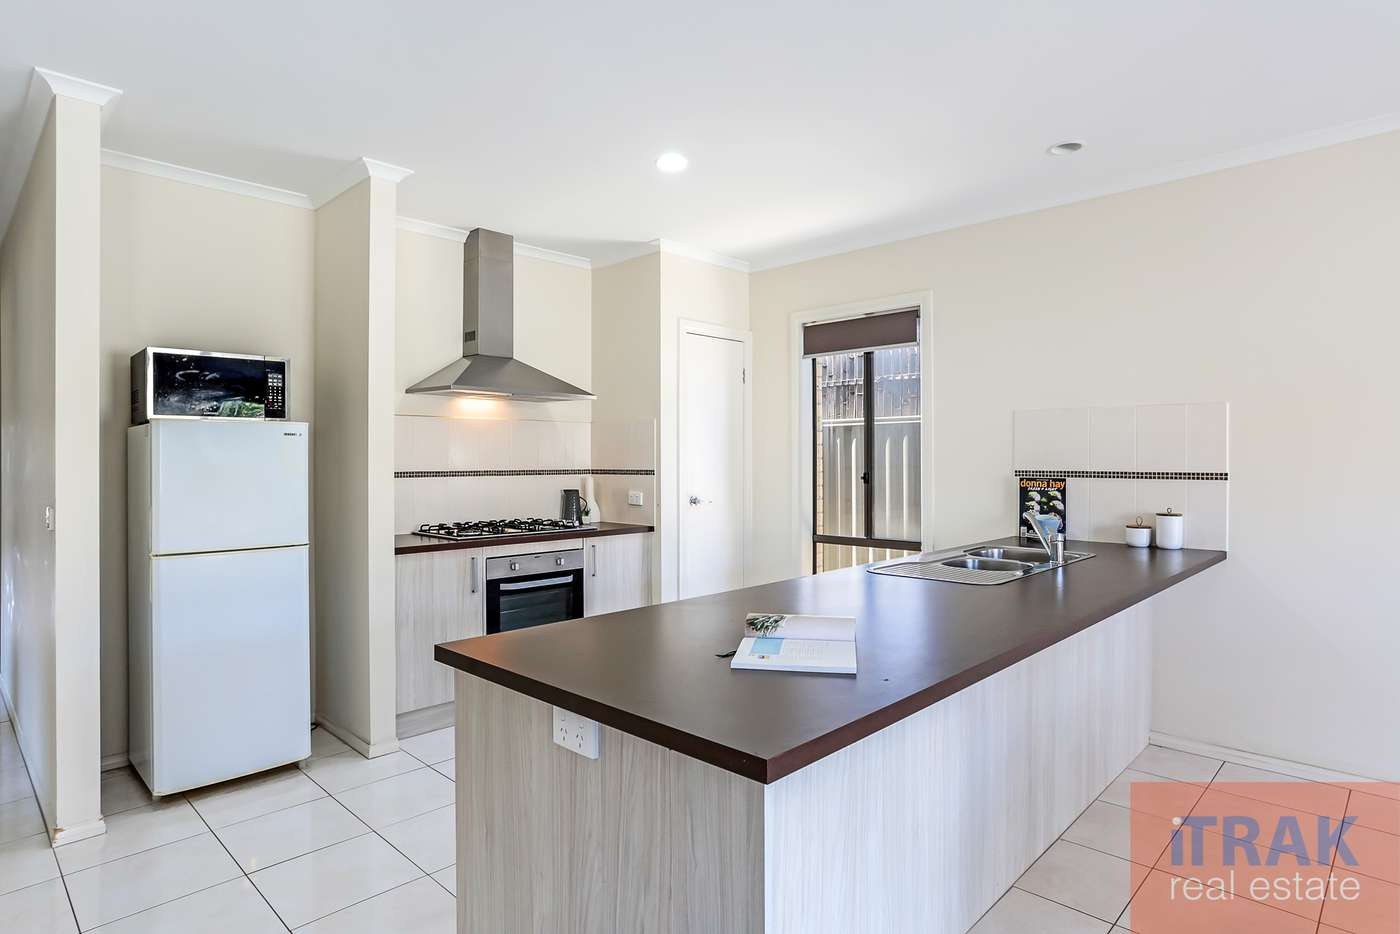 Main view of Homely house listing, 7 Haines Street, Cranbourne East VIC 3977